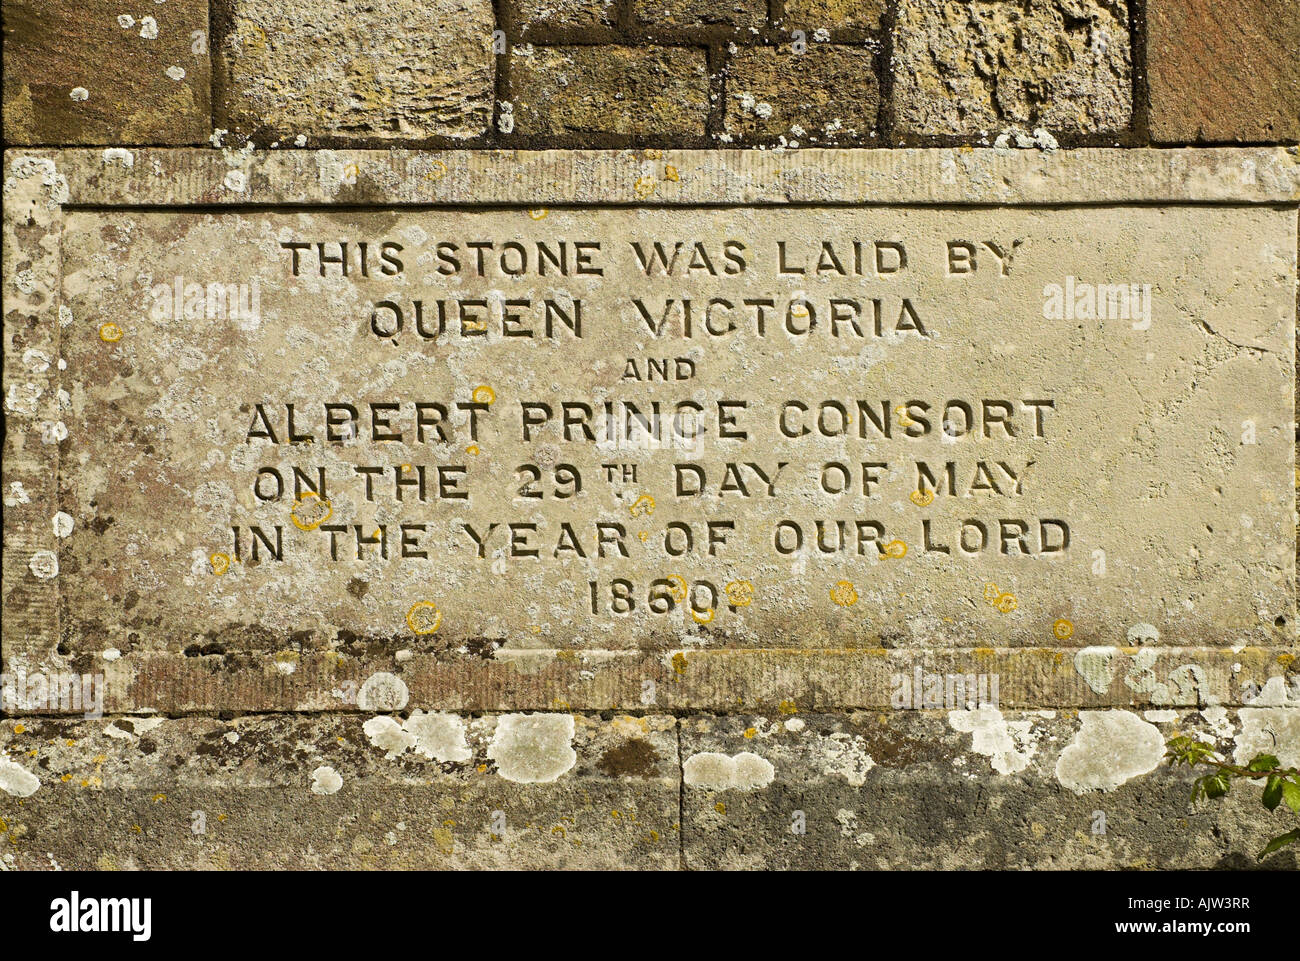 The foundation stone laid by Queen Victoria and Prince Albert - St  Mildred's church, Whippingham near East Cowes, Isle of Wight Stock Photo -  Alamy